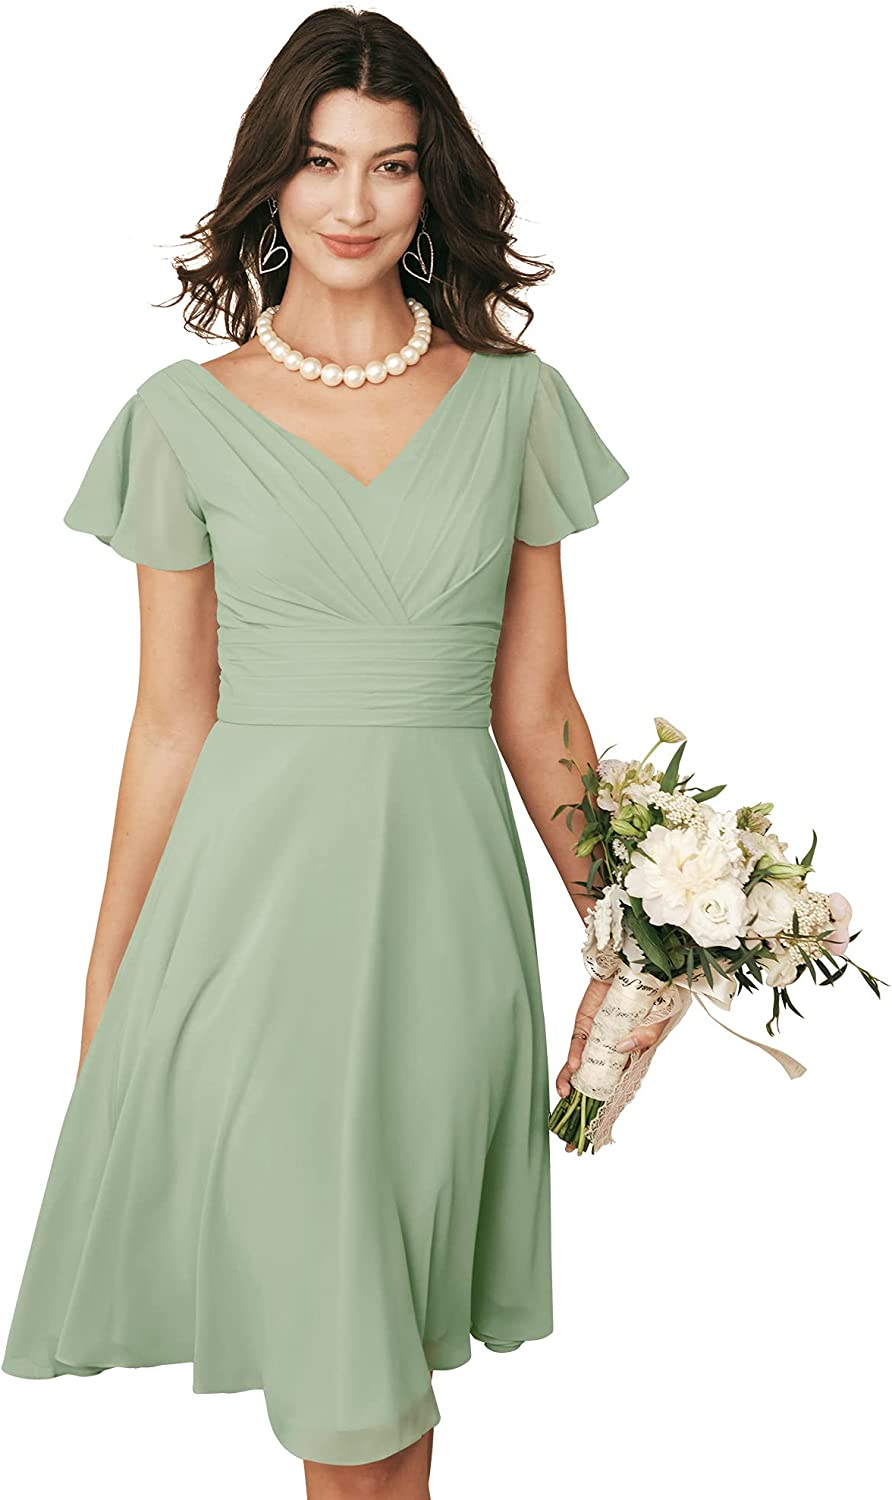 ALICEPUB V-Neck Chiffon Short Bridesmaid Dresses with Sleeves for Women Party Homecoming